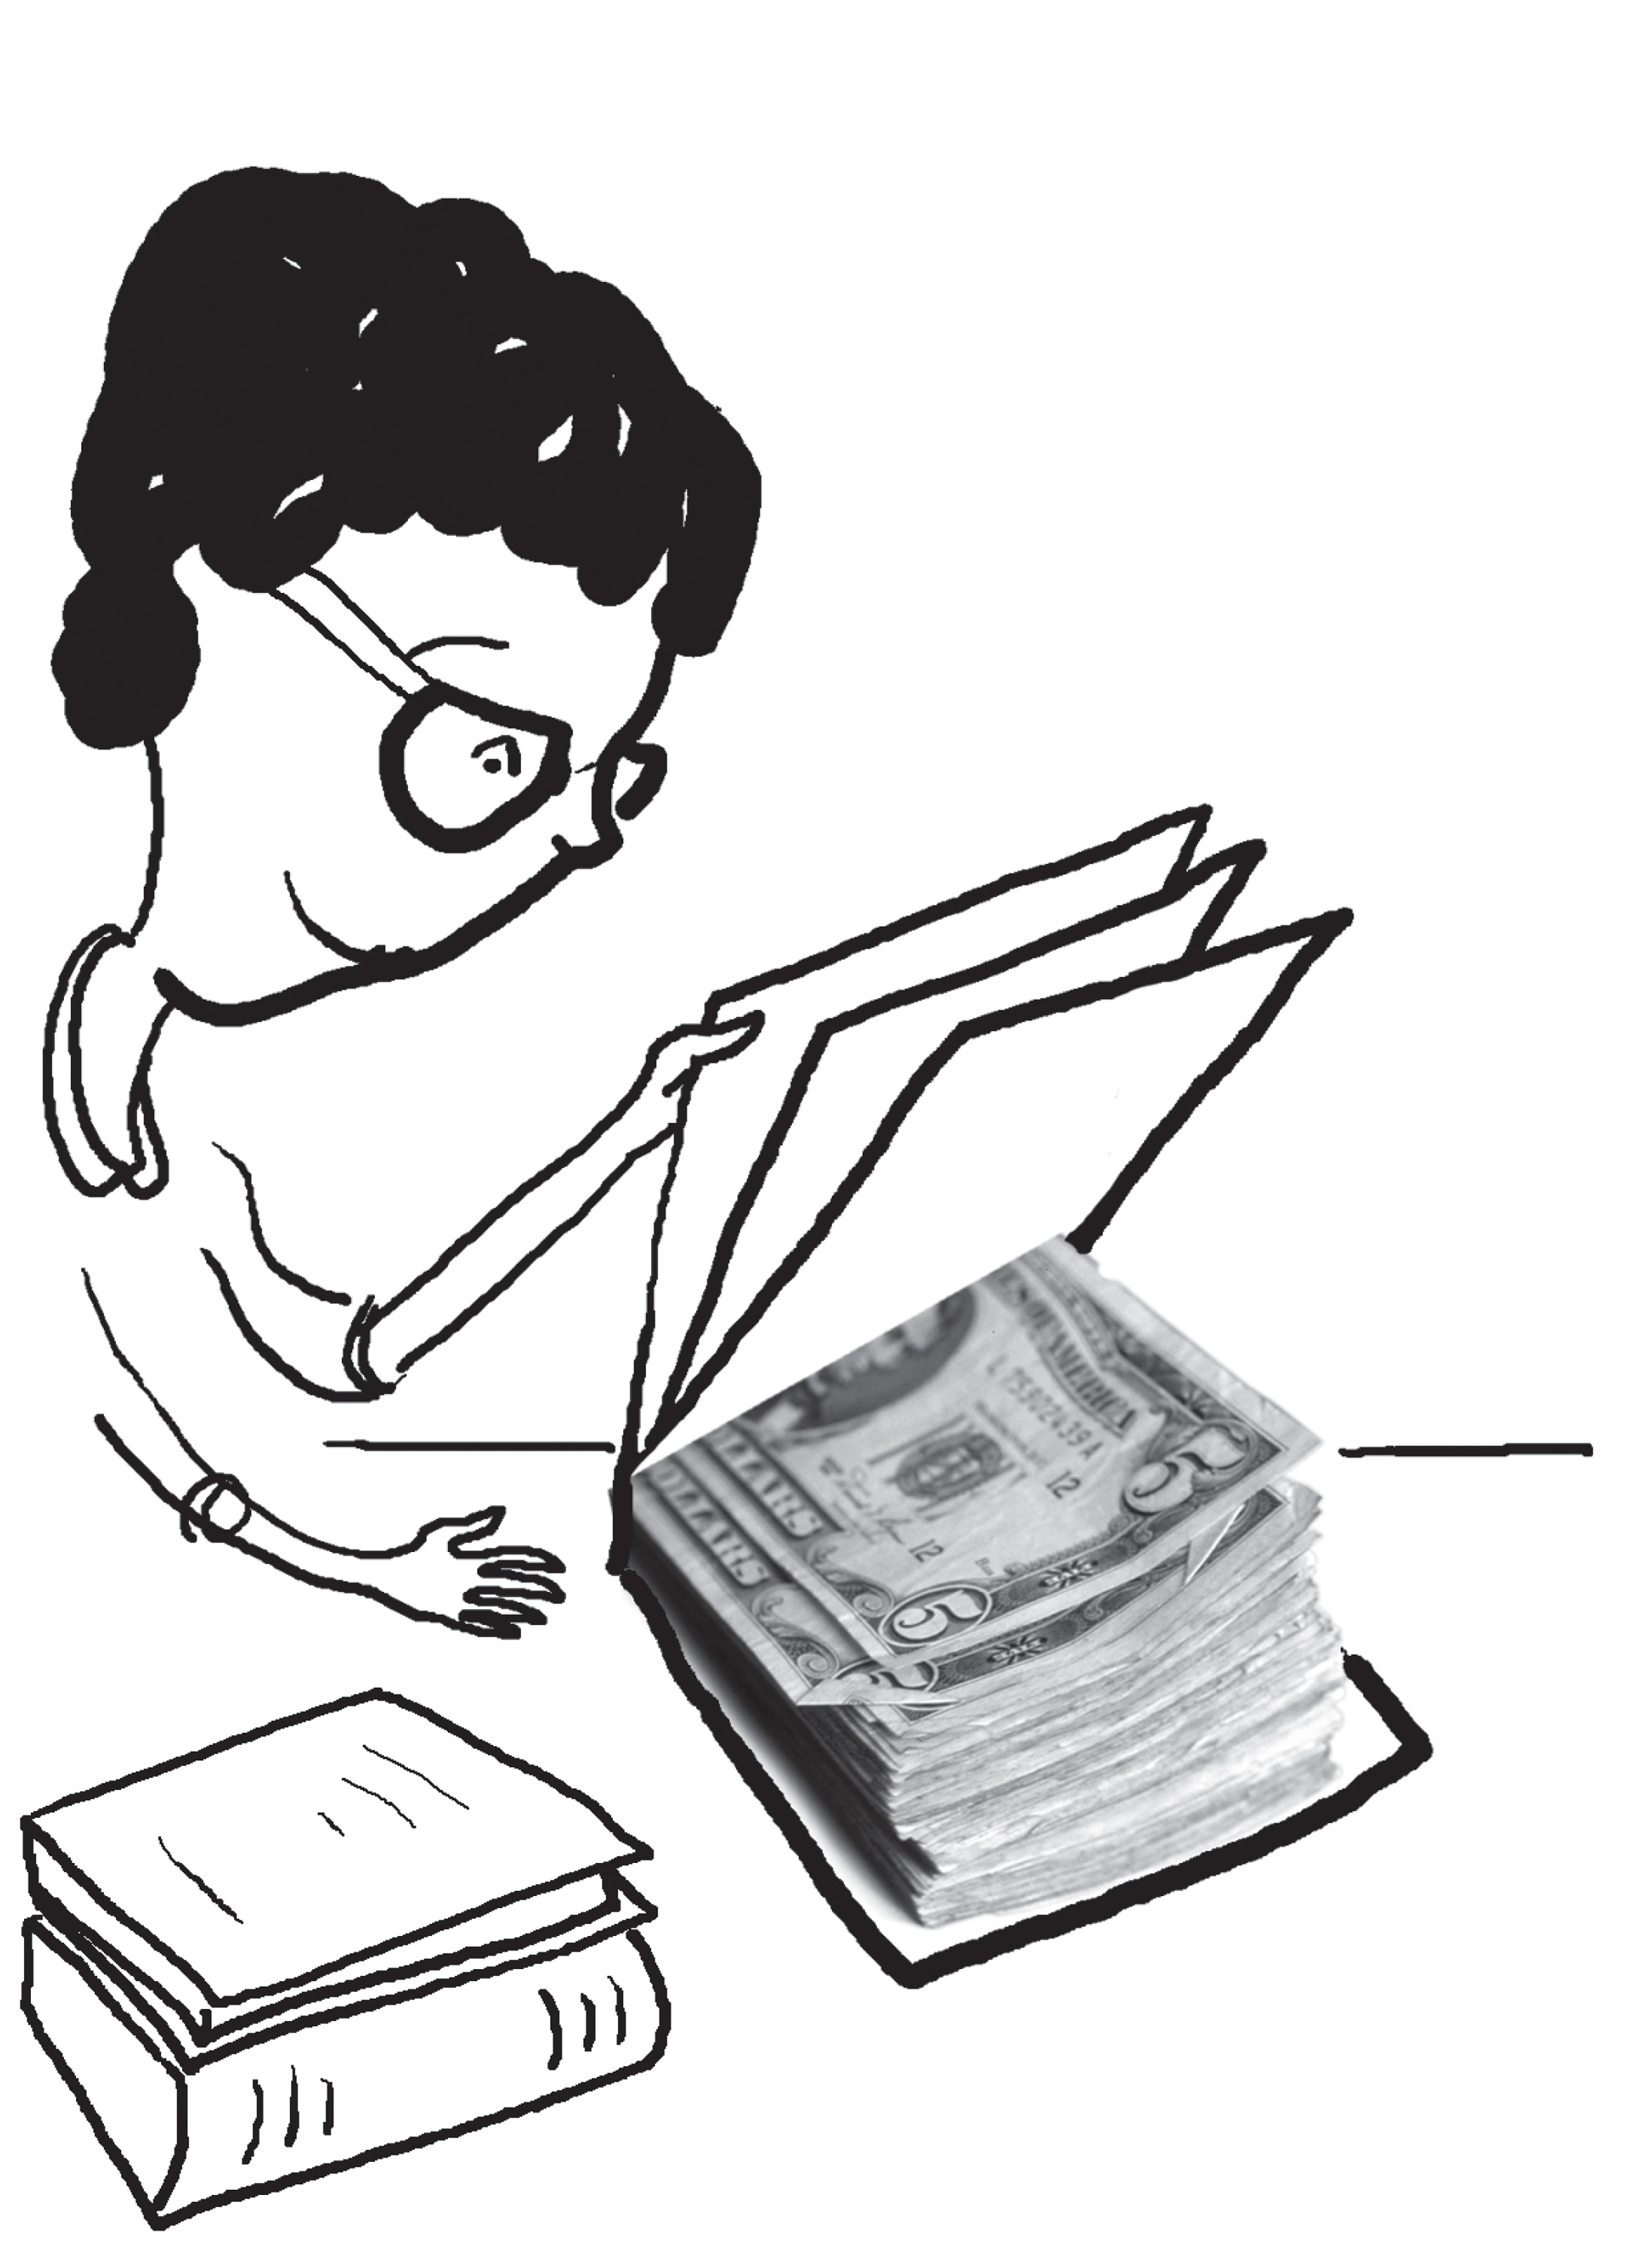 scholarships help students manage the cost of college the prospectus Student Internship Resume illustration by susan jouflas the seattle times